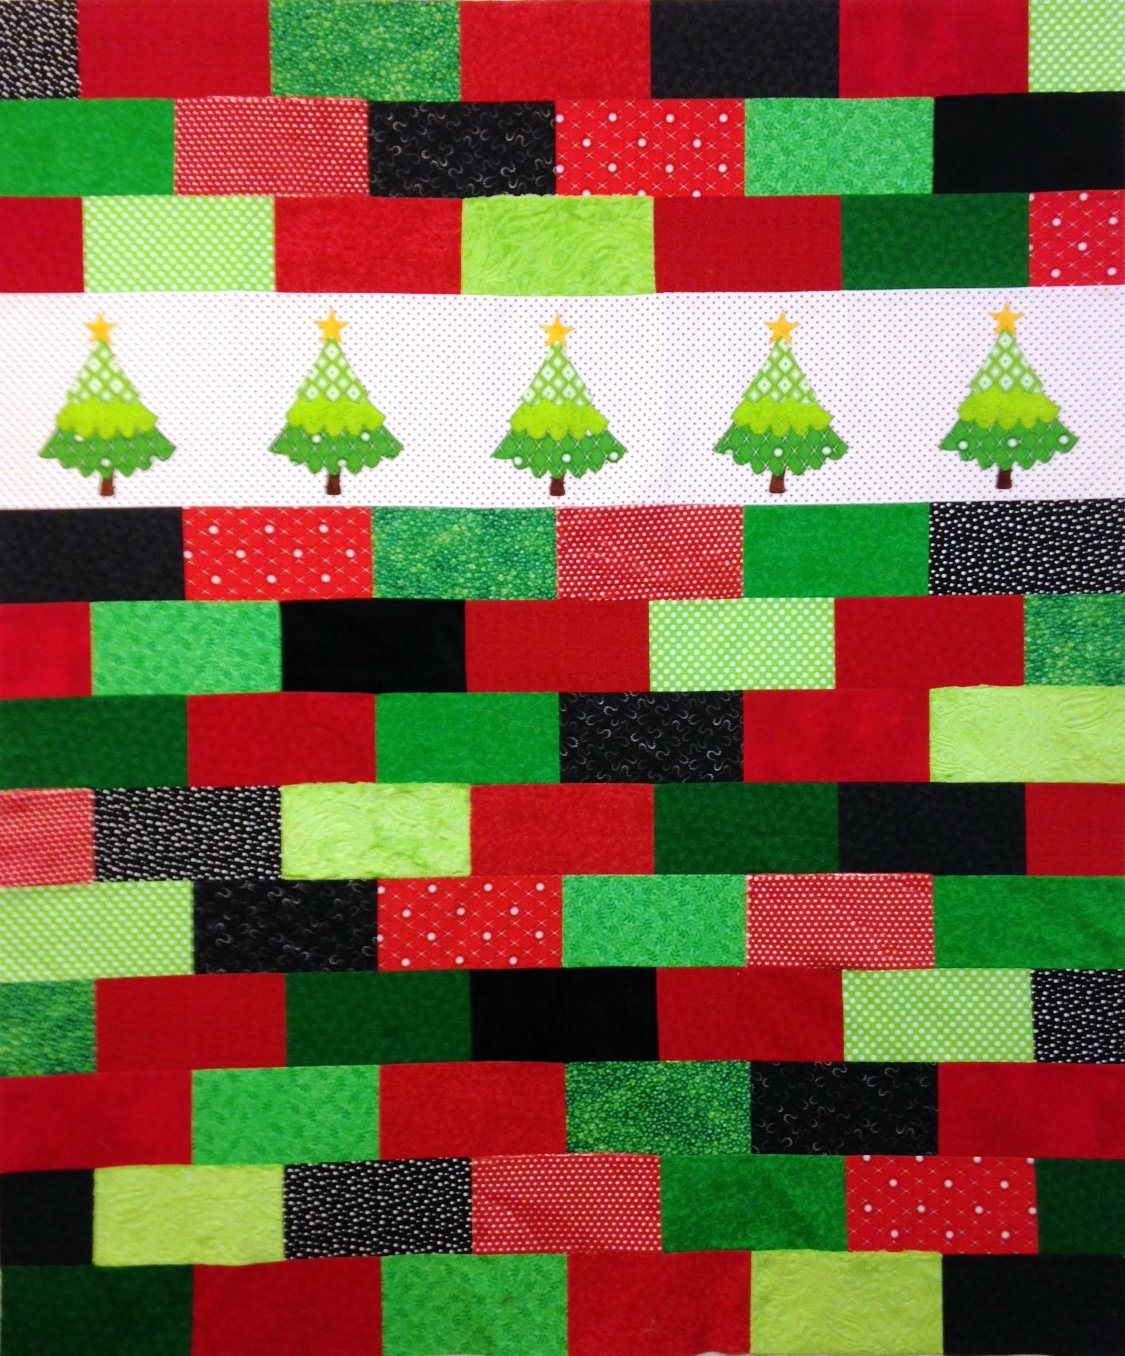 Cozy Trees Mixed Textured Quilt Kit